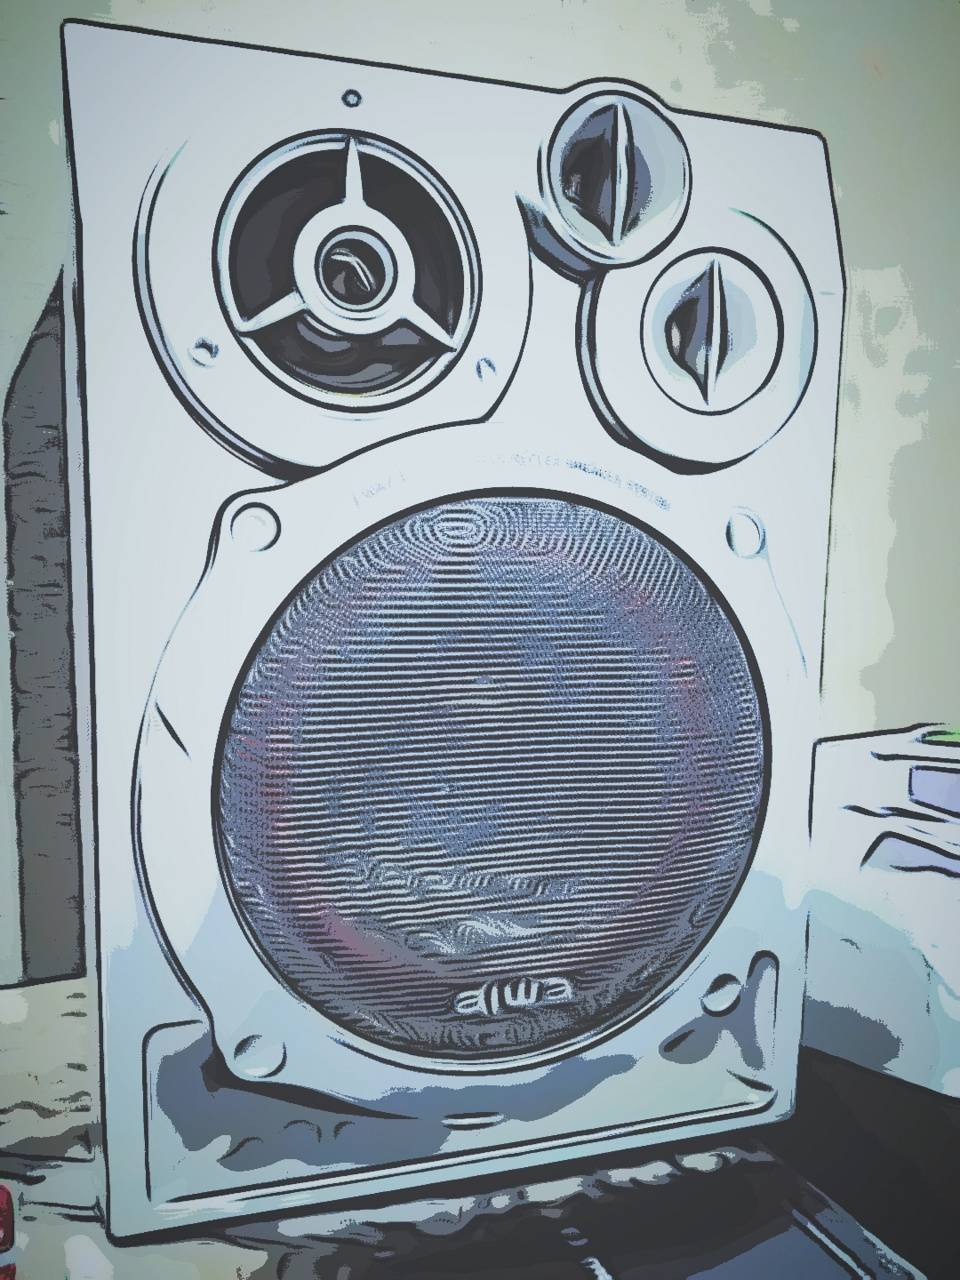 FATHER OF AUDIONIC